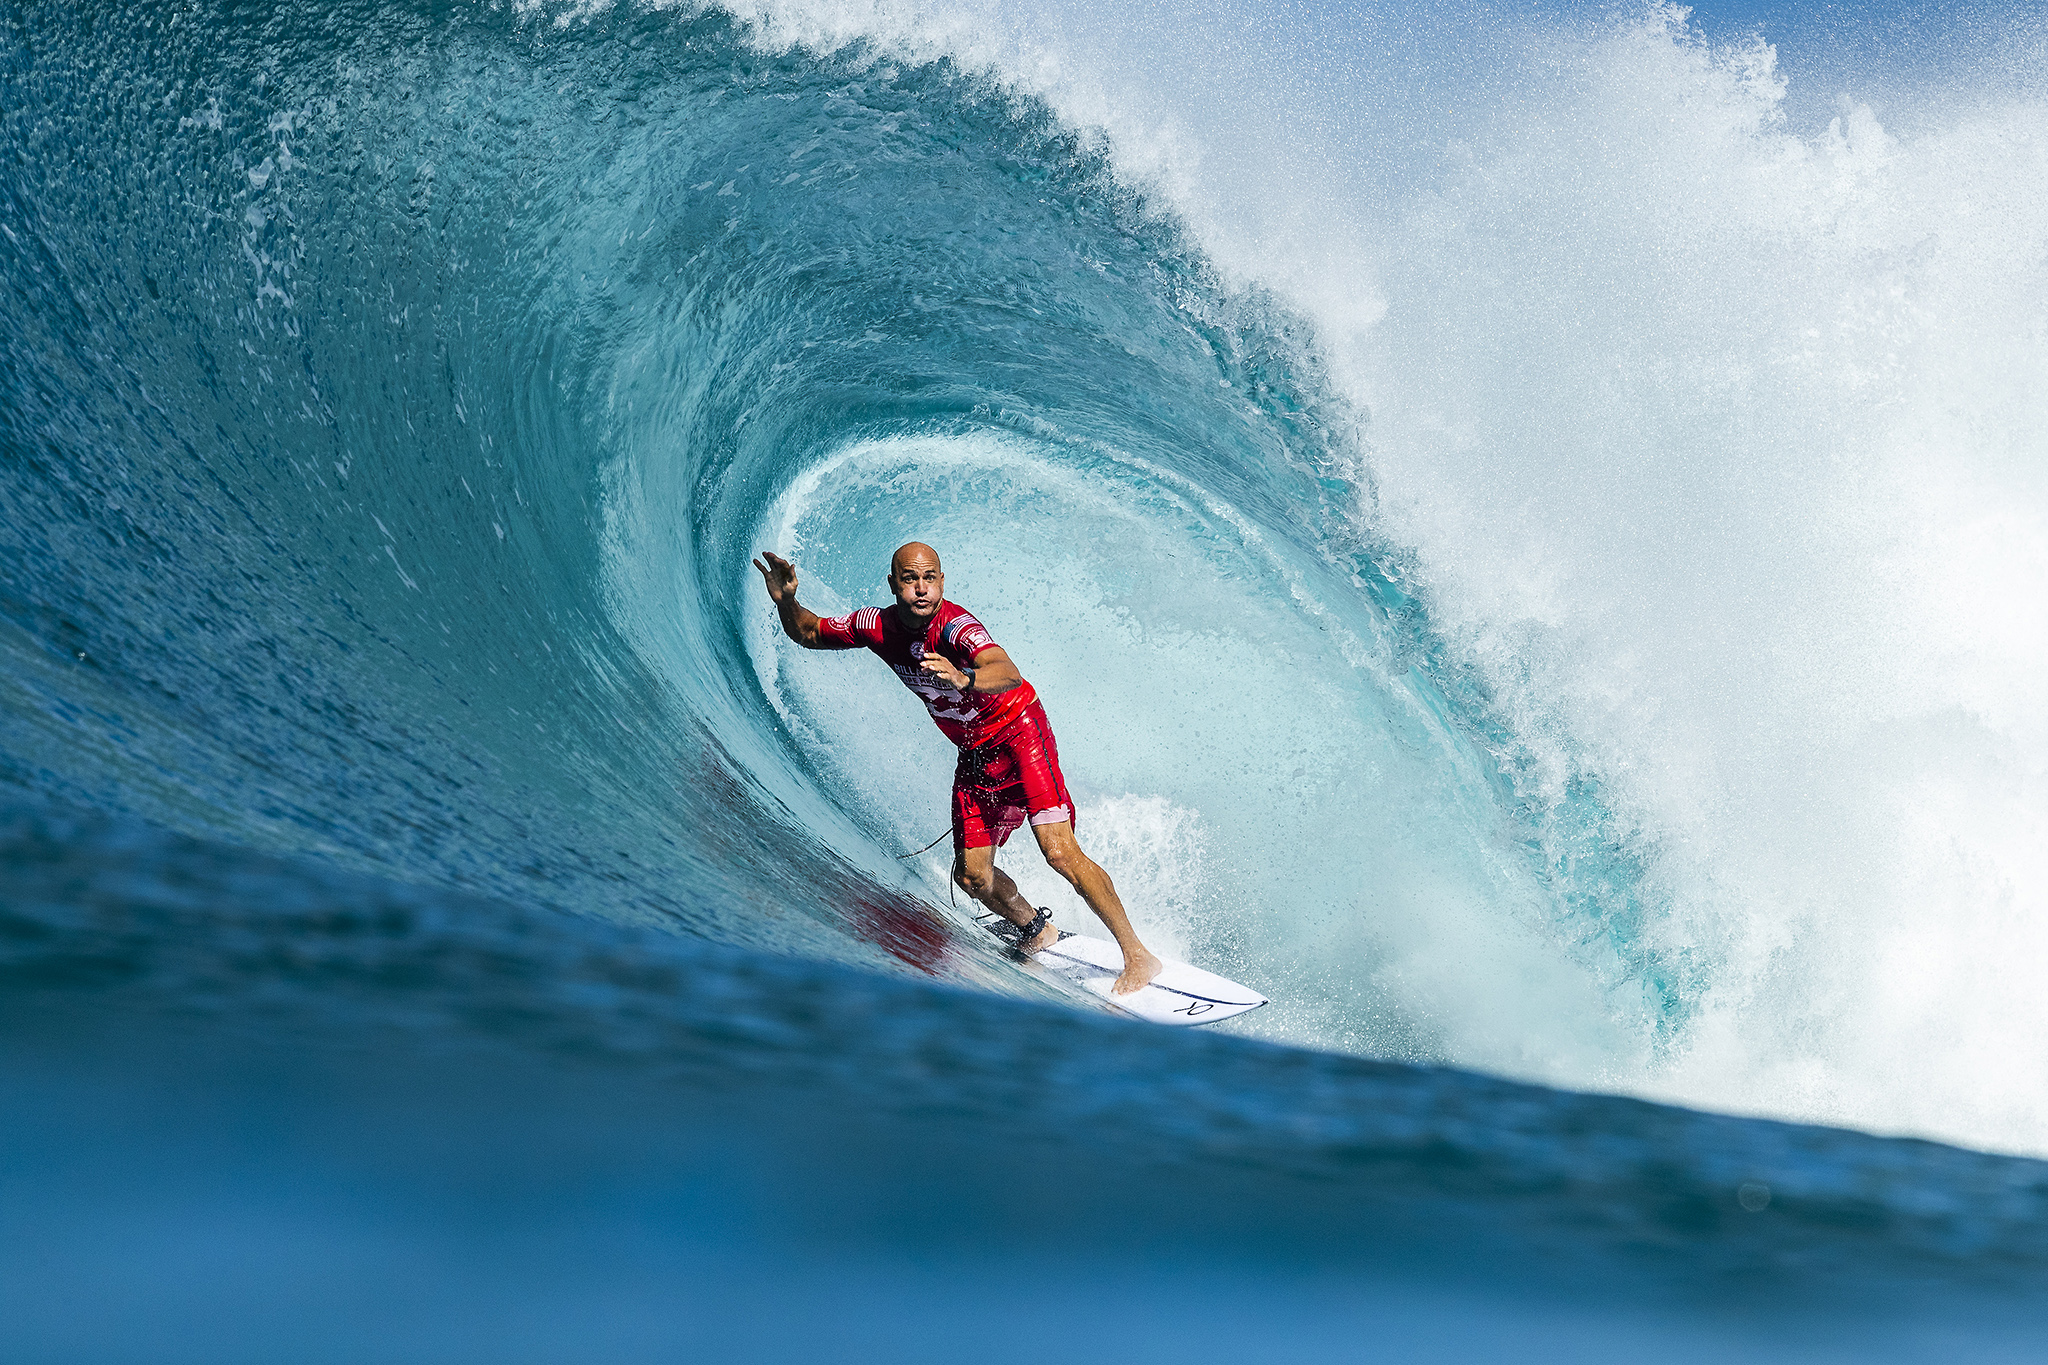 e52c890c39 11X World Champion Kelly Slater (USA) is eliminated from the 2018 Billabong  Pipe Masters with an equal 3rd finish after placing second in semifinal  heat 2 ...